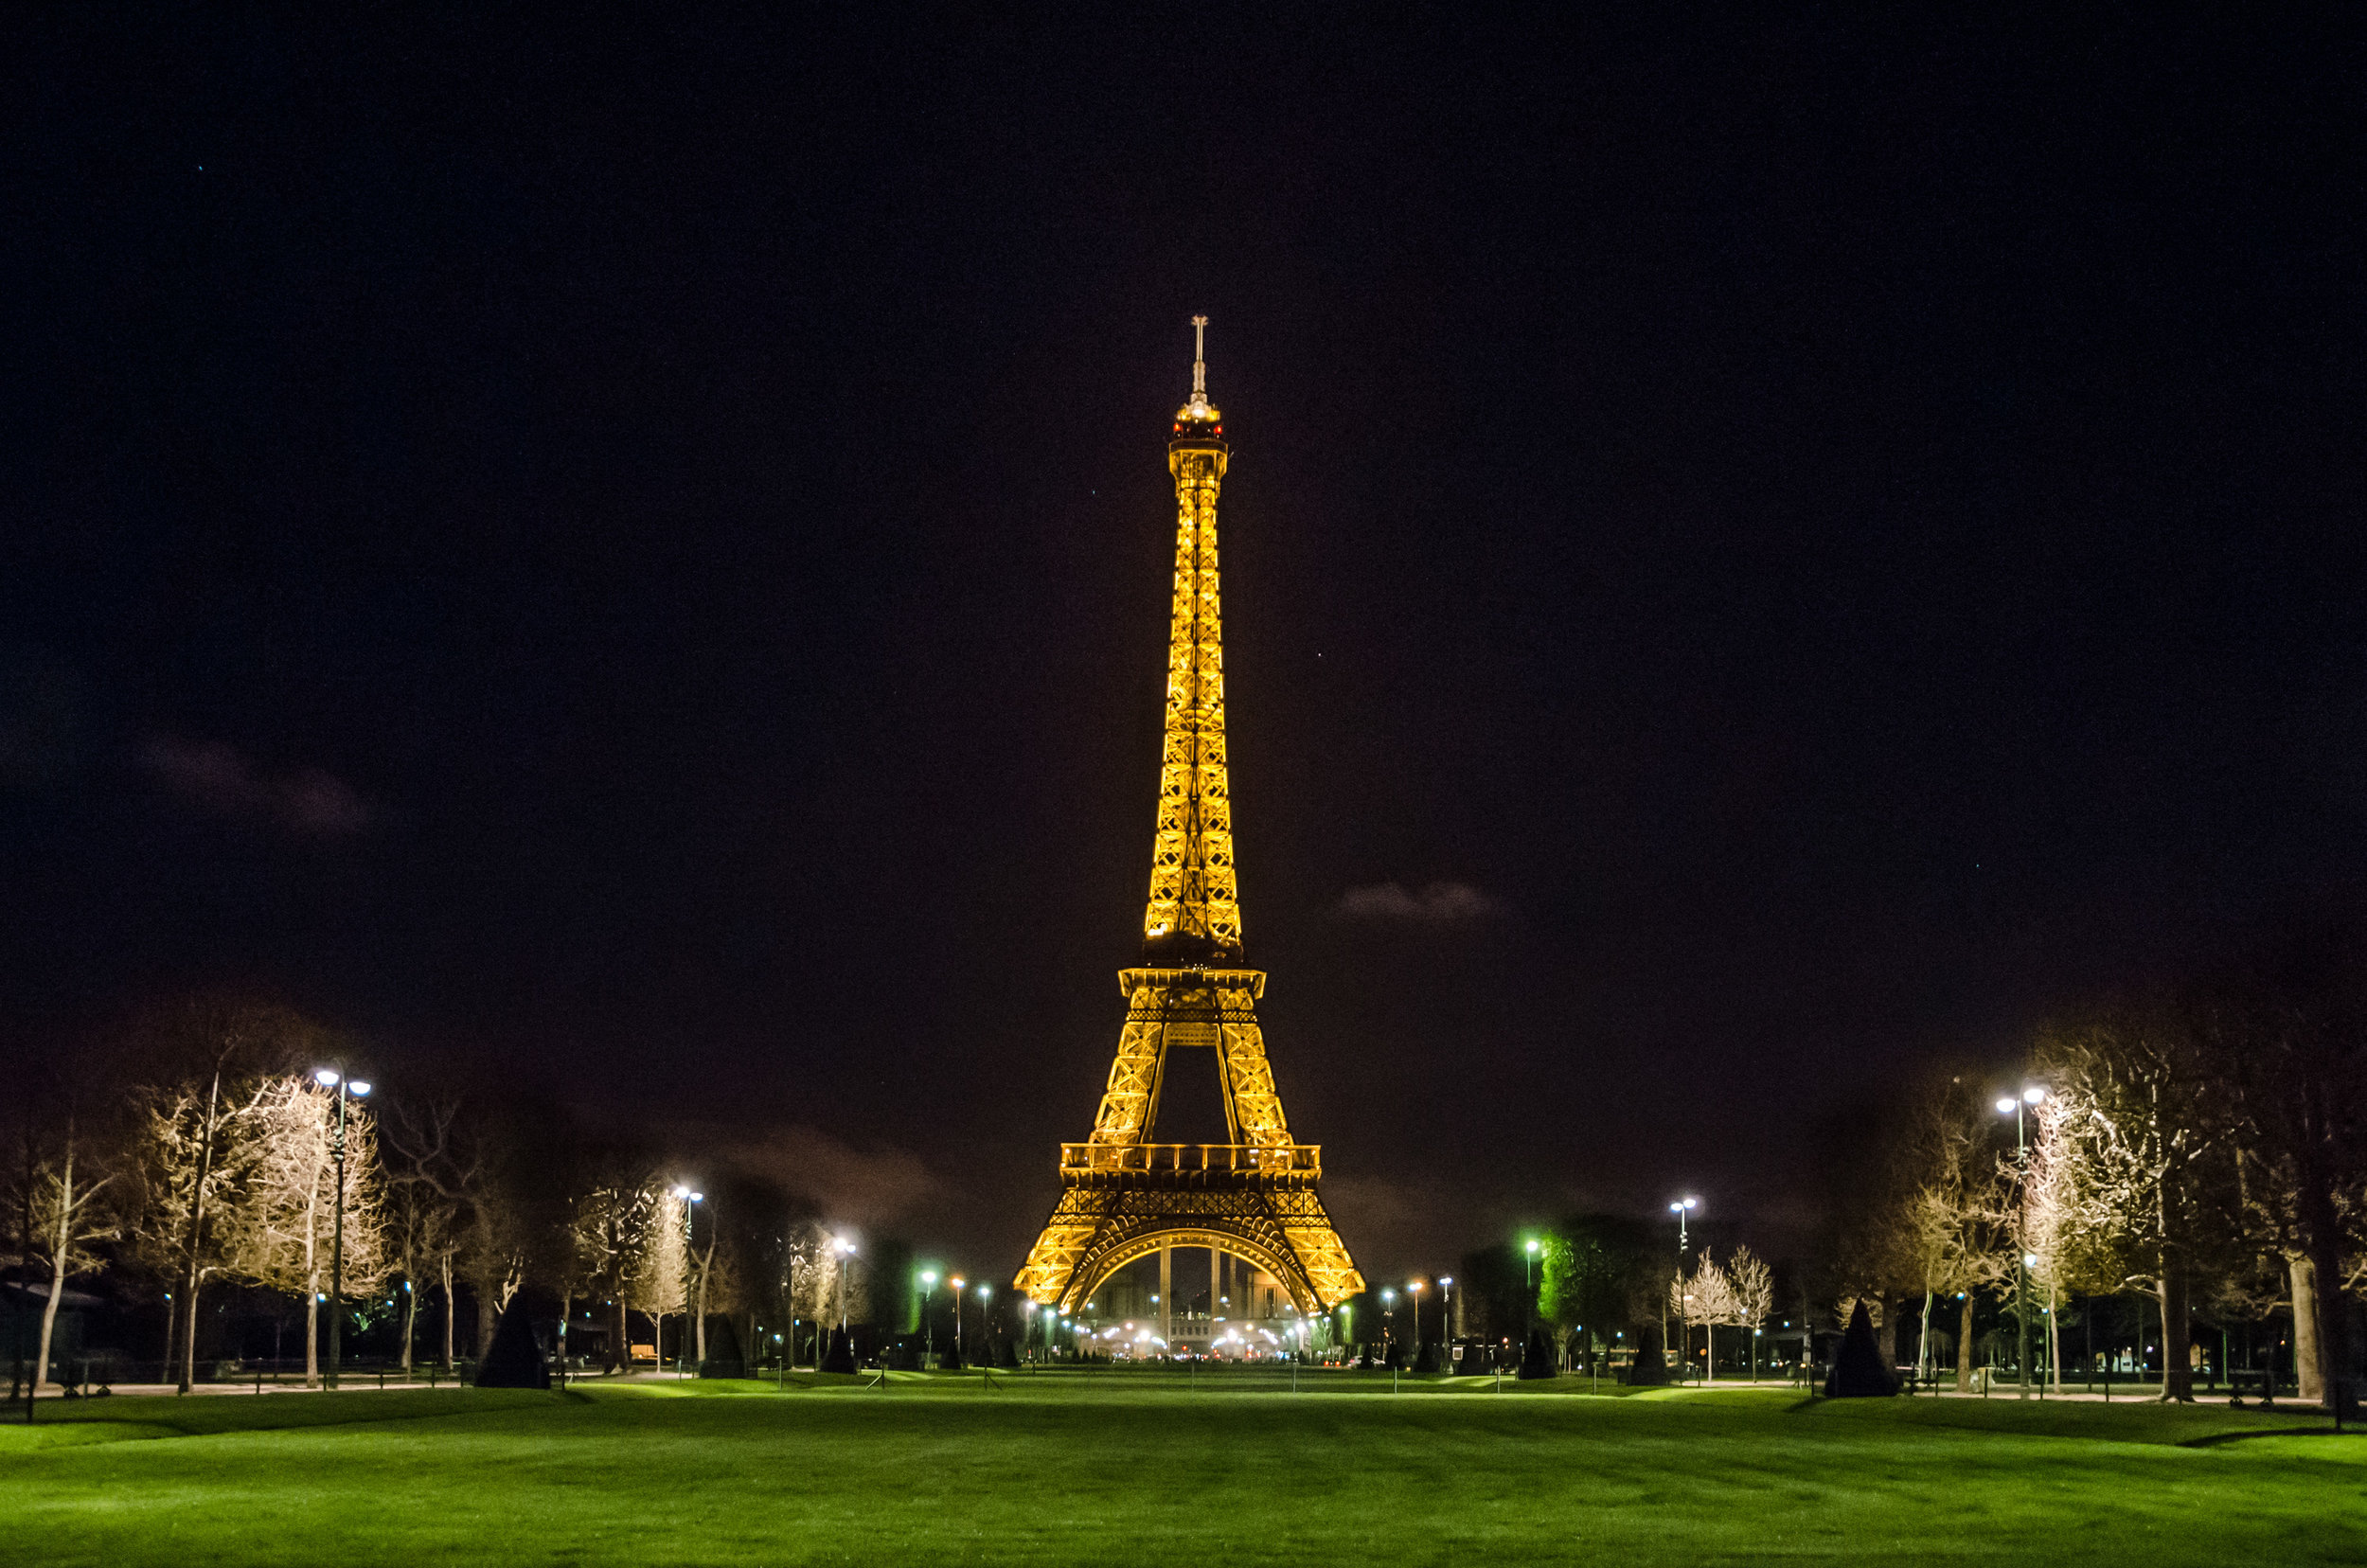 Uh oh! We didn't get France's permission to run this photo of the Eiffel Tower at night